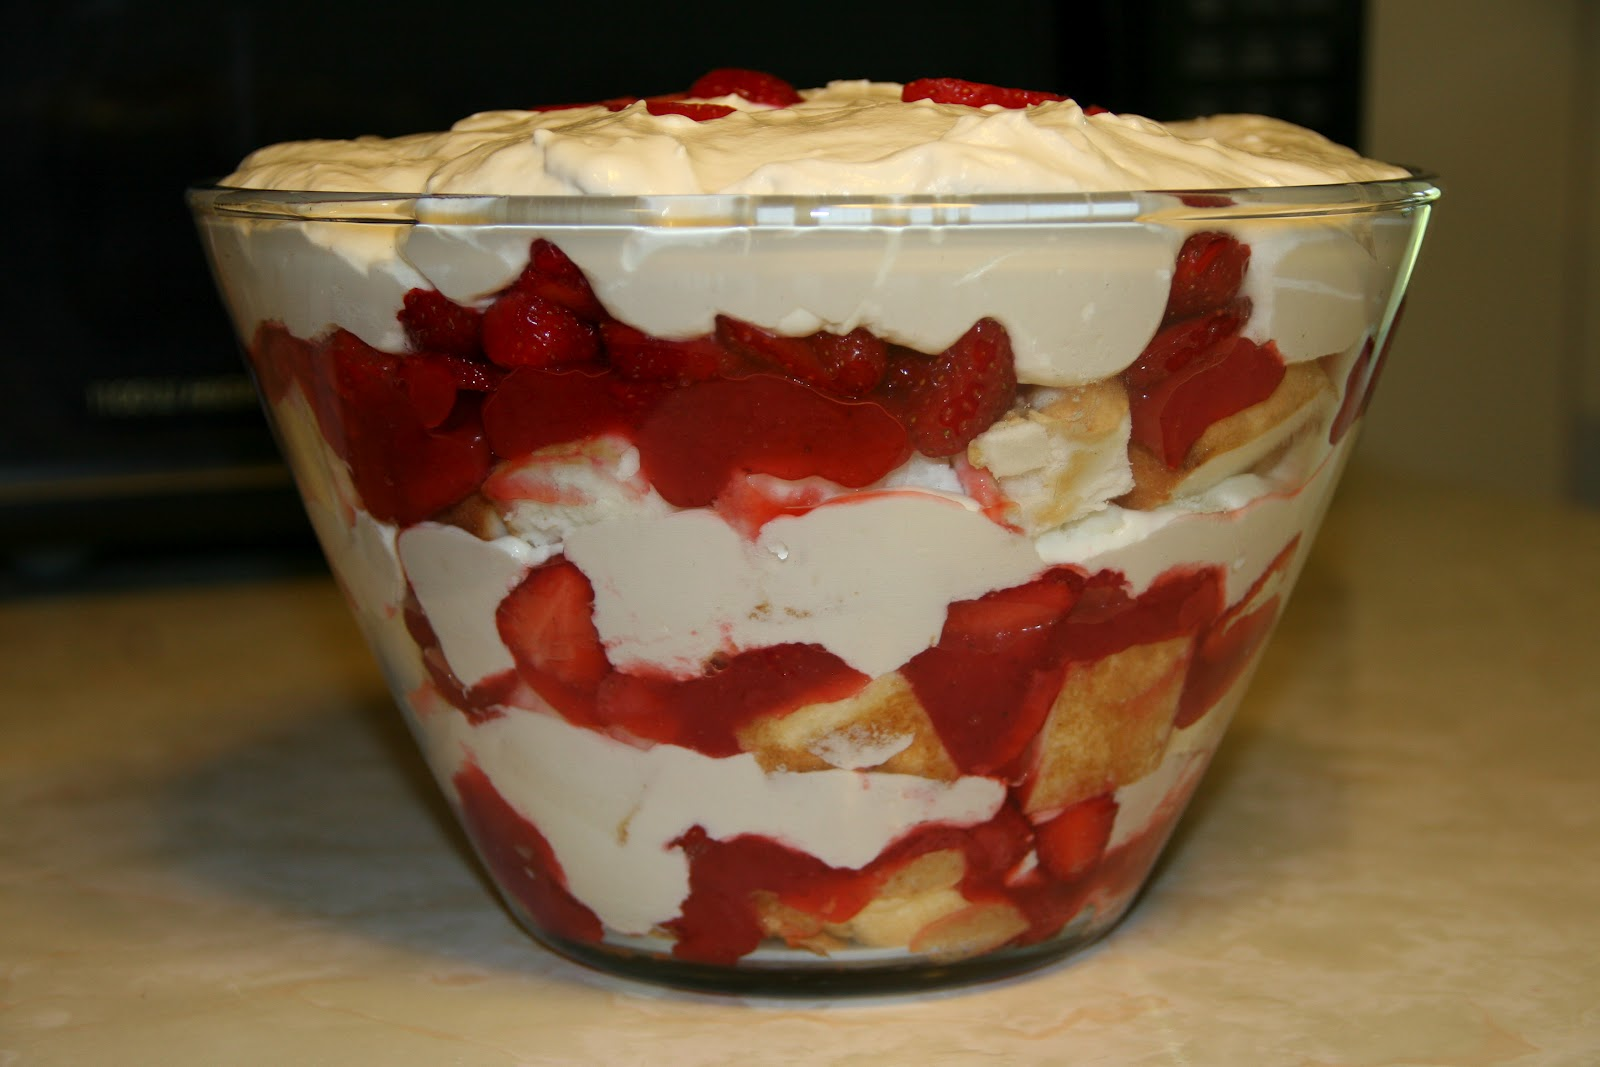 It's My Life: Strawberry Trifle